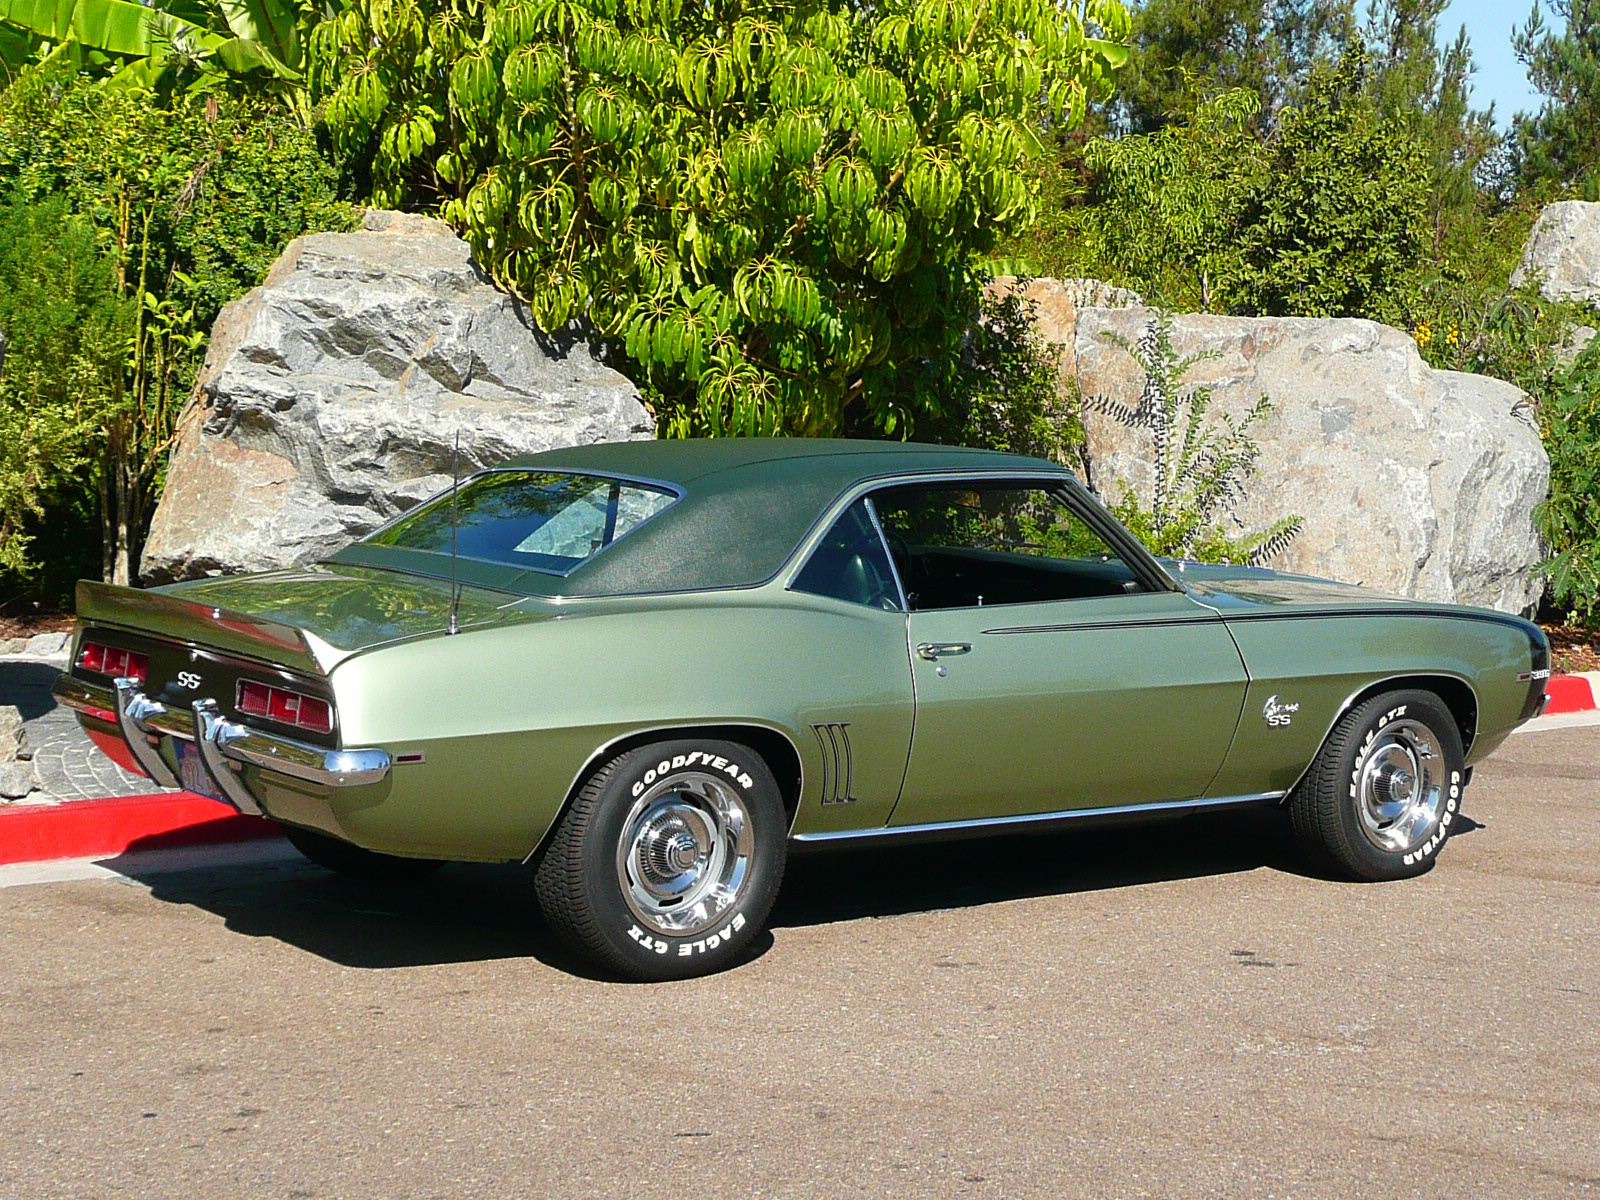 1969 CHEVROLET CAMARO SS COUPE - Rear 3/4 - 80979